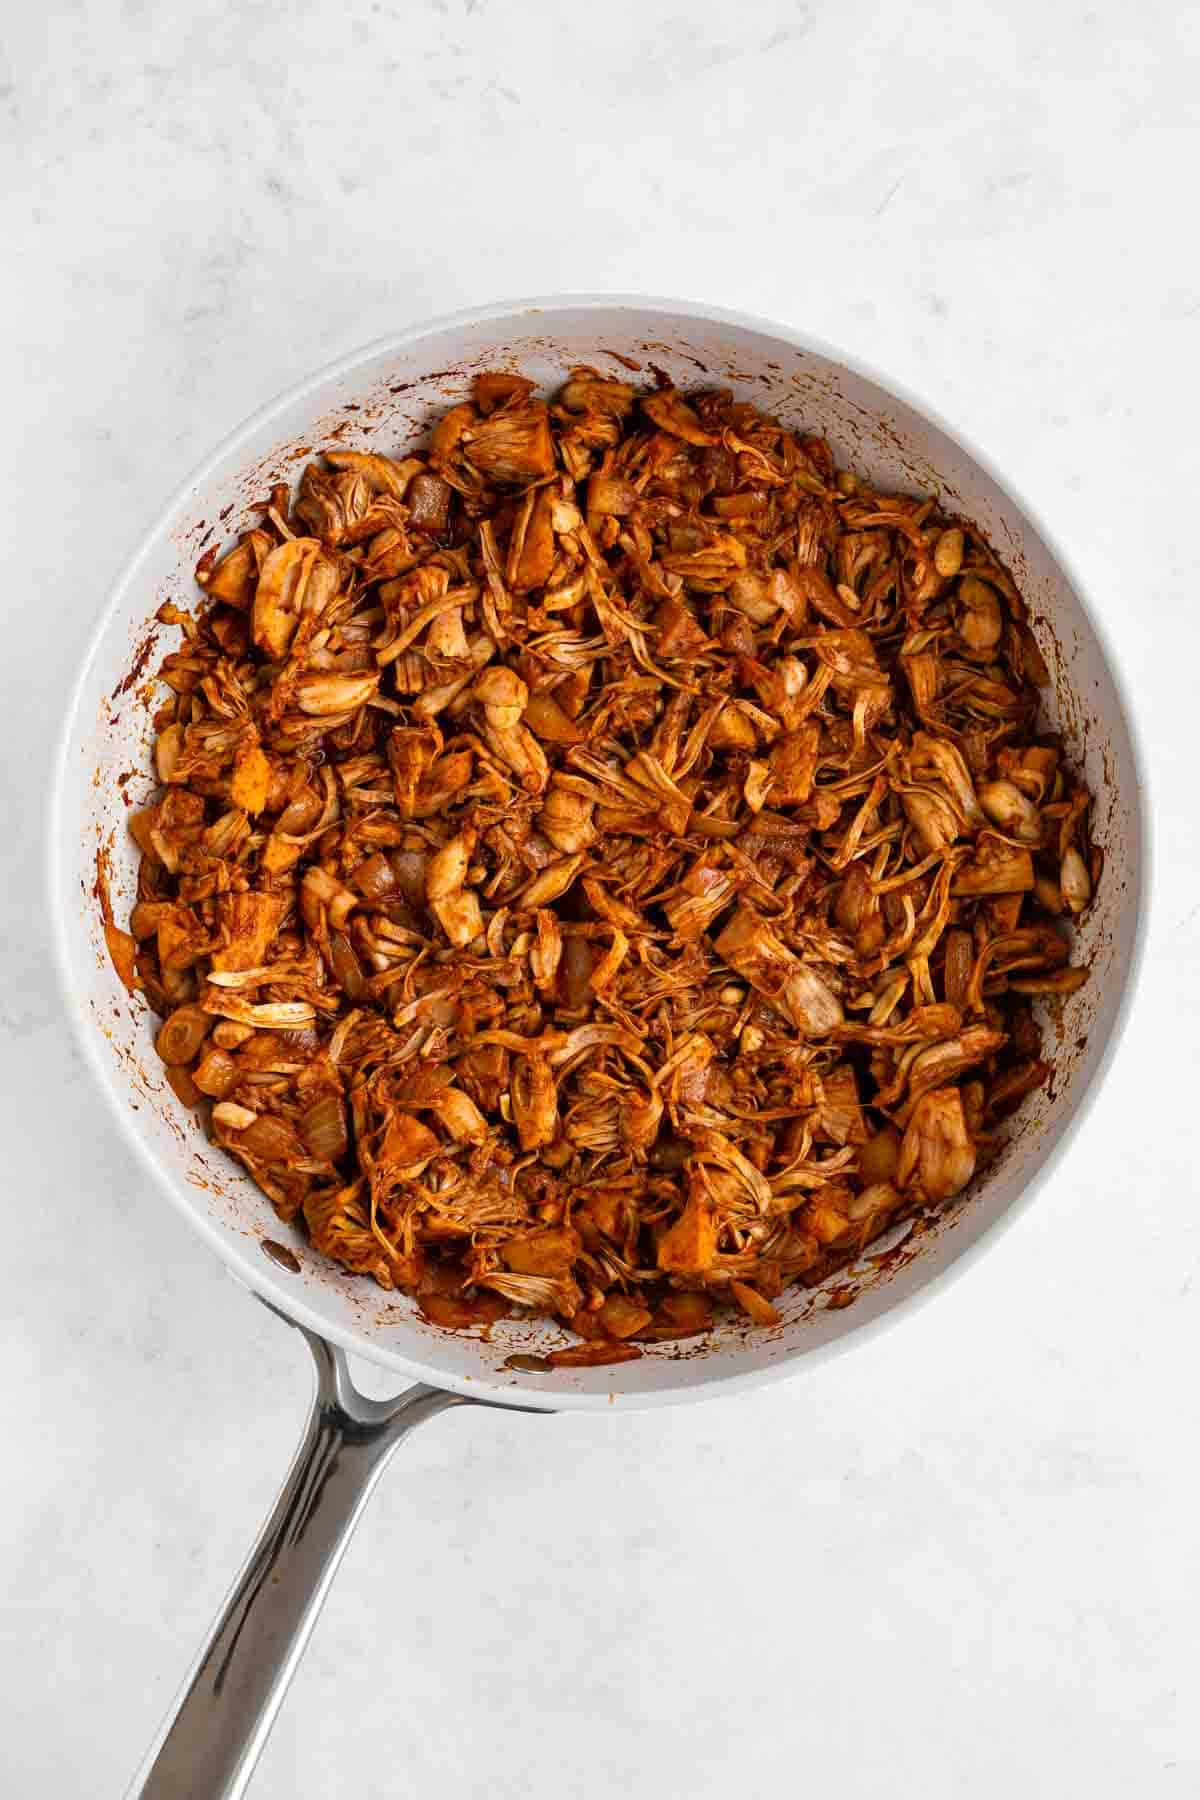 cooking spicy shredded jackfruit on a pan